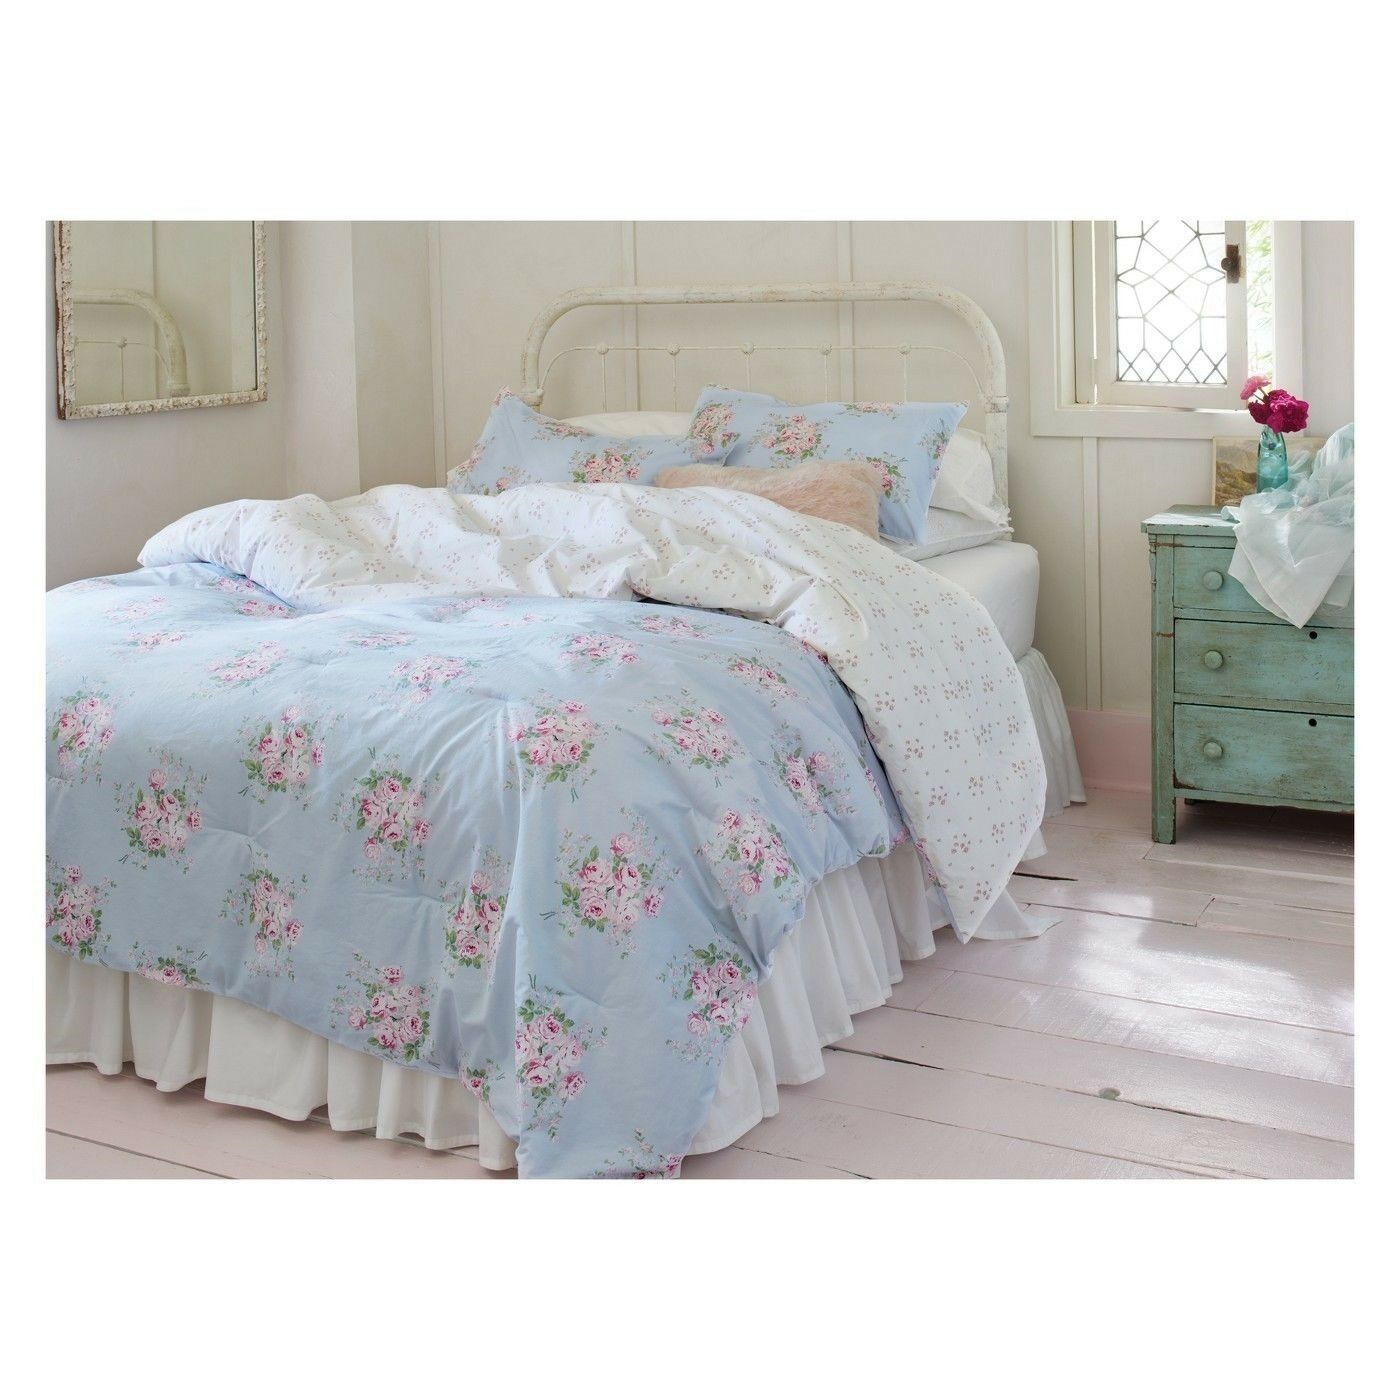 Rachel Ashwell Simply Shabby Chic Misty Blue Floral Roses F Q Comforter Set New Shabby Chic Room Chic Bedding Simply Shabby Chic